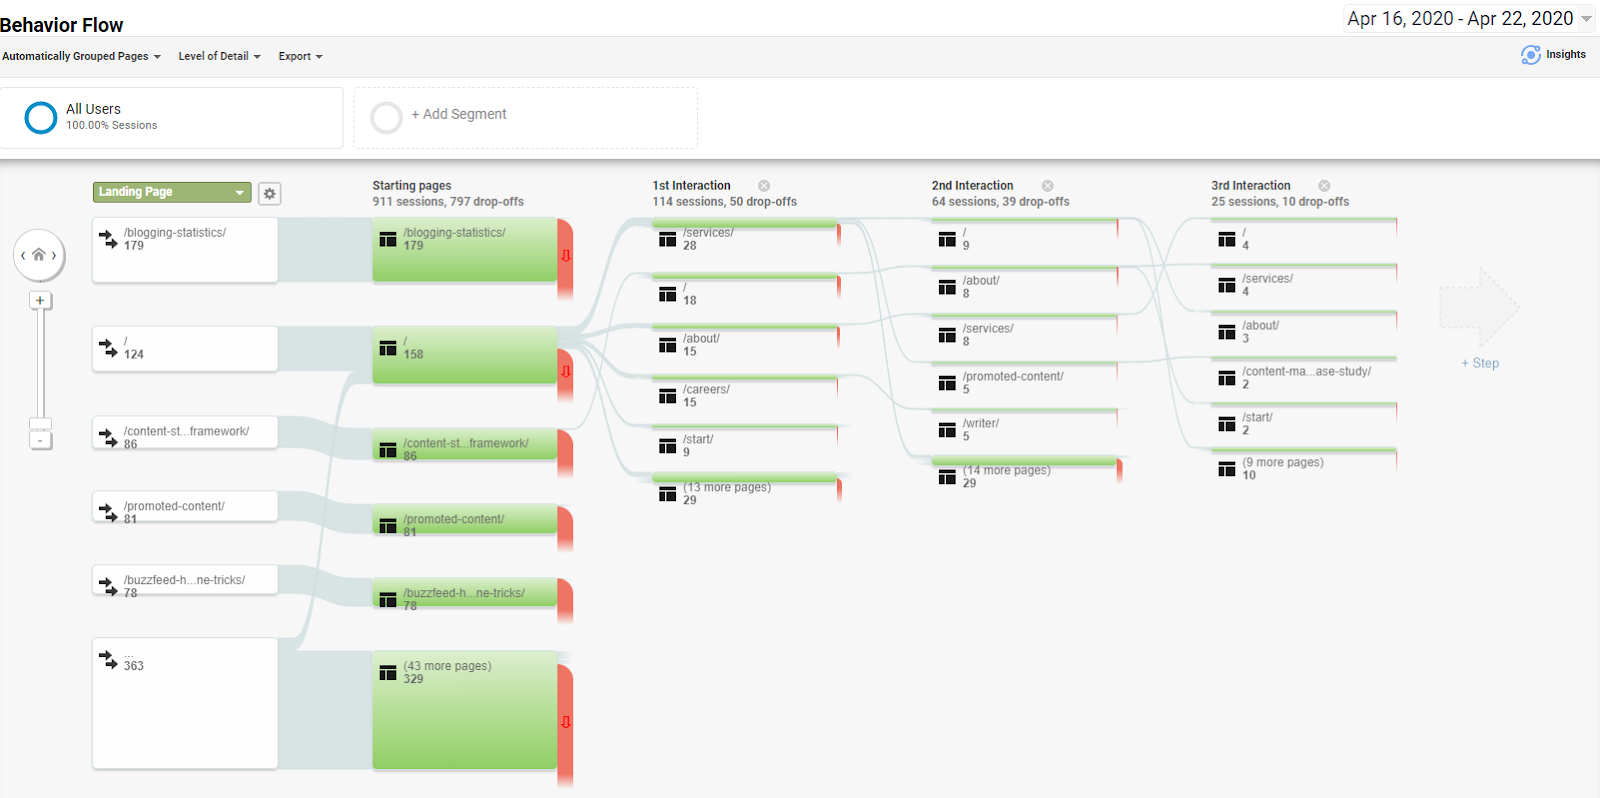 Google Analytics Behavior Flow report